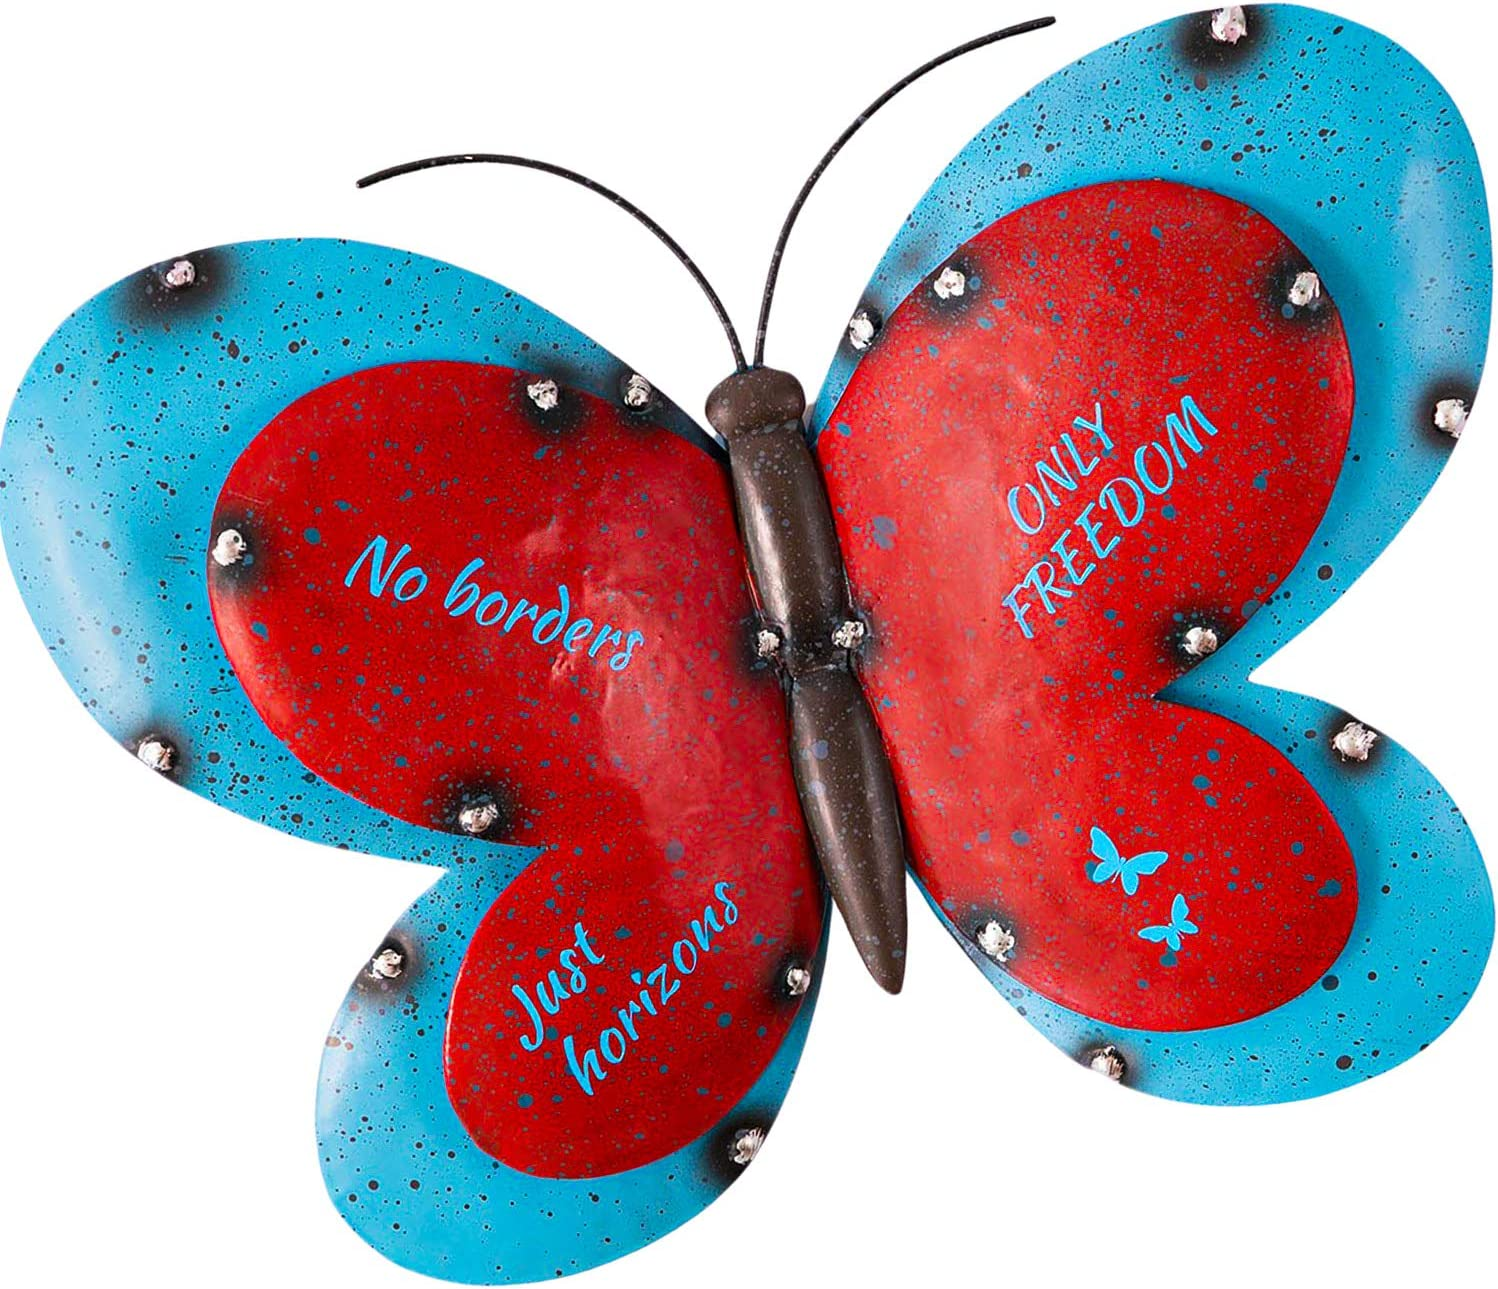 Butterfly Metal Wall Art - Outdoor / Indoor Rustic - Vintage 2-Tone Wall Hanging for Garden   Patio   Porch   Living Room   Kitchen - Handmade 3D Art Décor - 12x9 Inches - Blue / Red